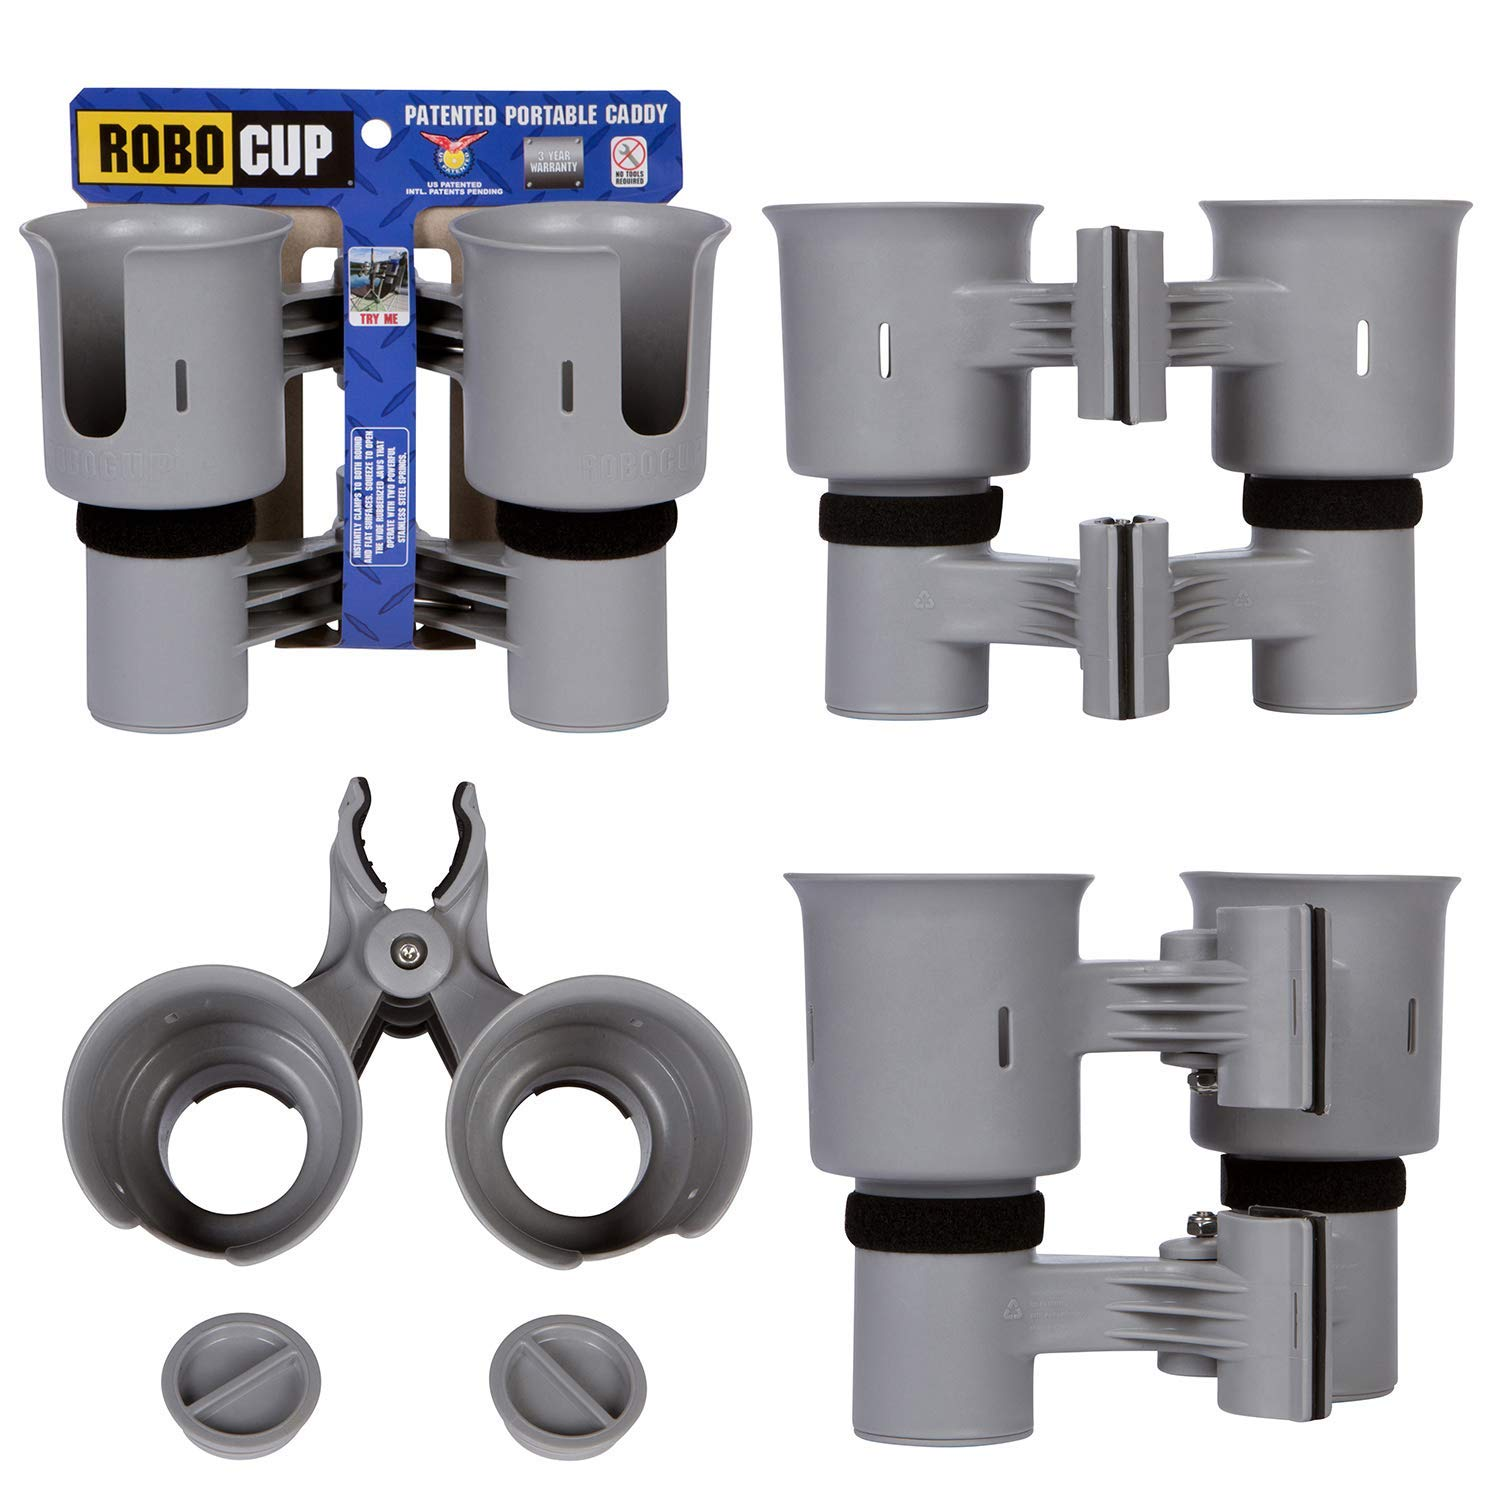 ROBOCUP Gray, Best Cup Holder for Drinks, Fishing Rod/Pole, Boat, Beach Chair/Golf Cart/Wheelchair/Walker/Drum Sticks/Microphone Stand by ROBOCUP